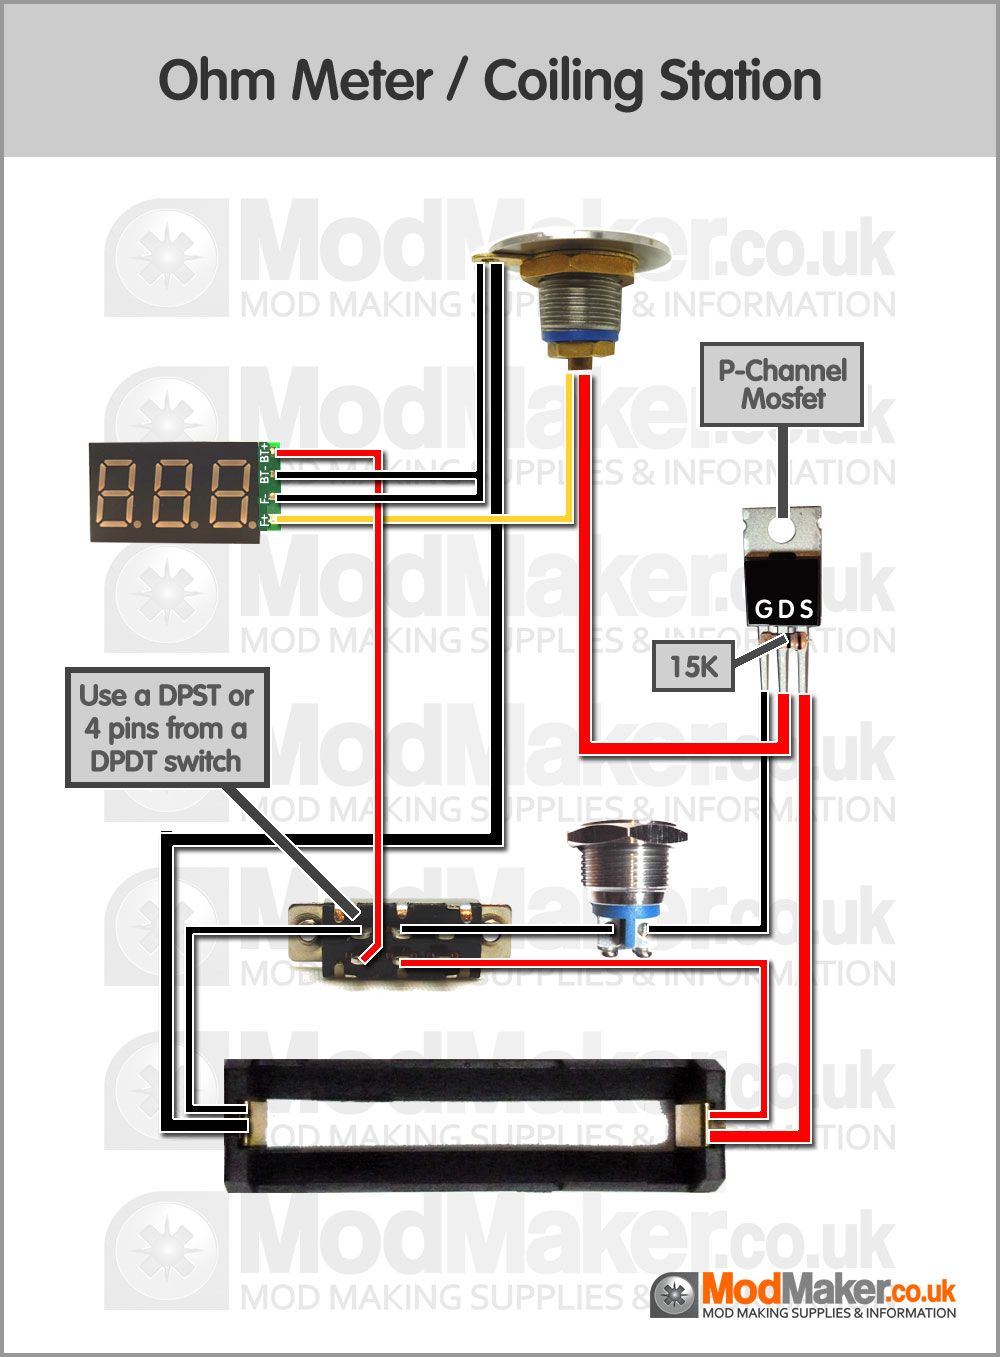 hight resolution of ohm meter coiling station wiring diagram vape in 2019 vape mods mod meter wiring diagram